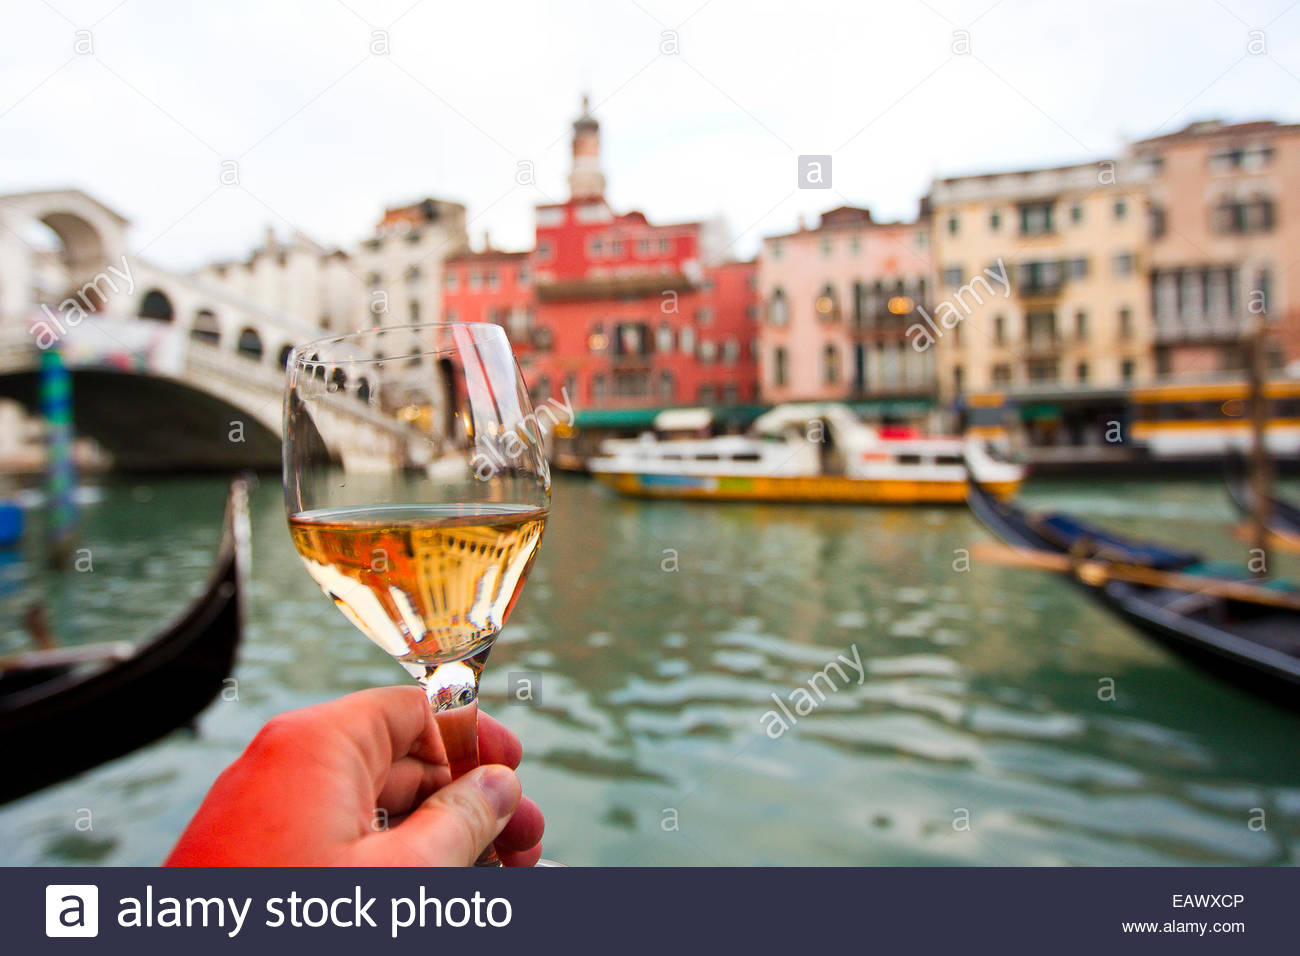 Renaissance era buildings viewed through a wine glass. - Stock Image